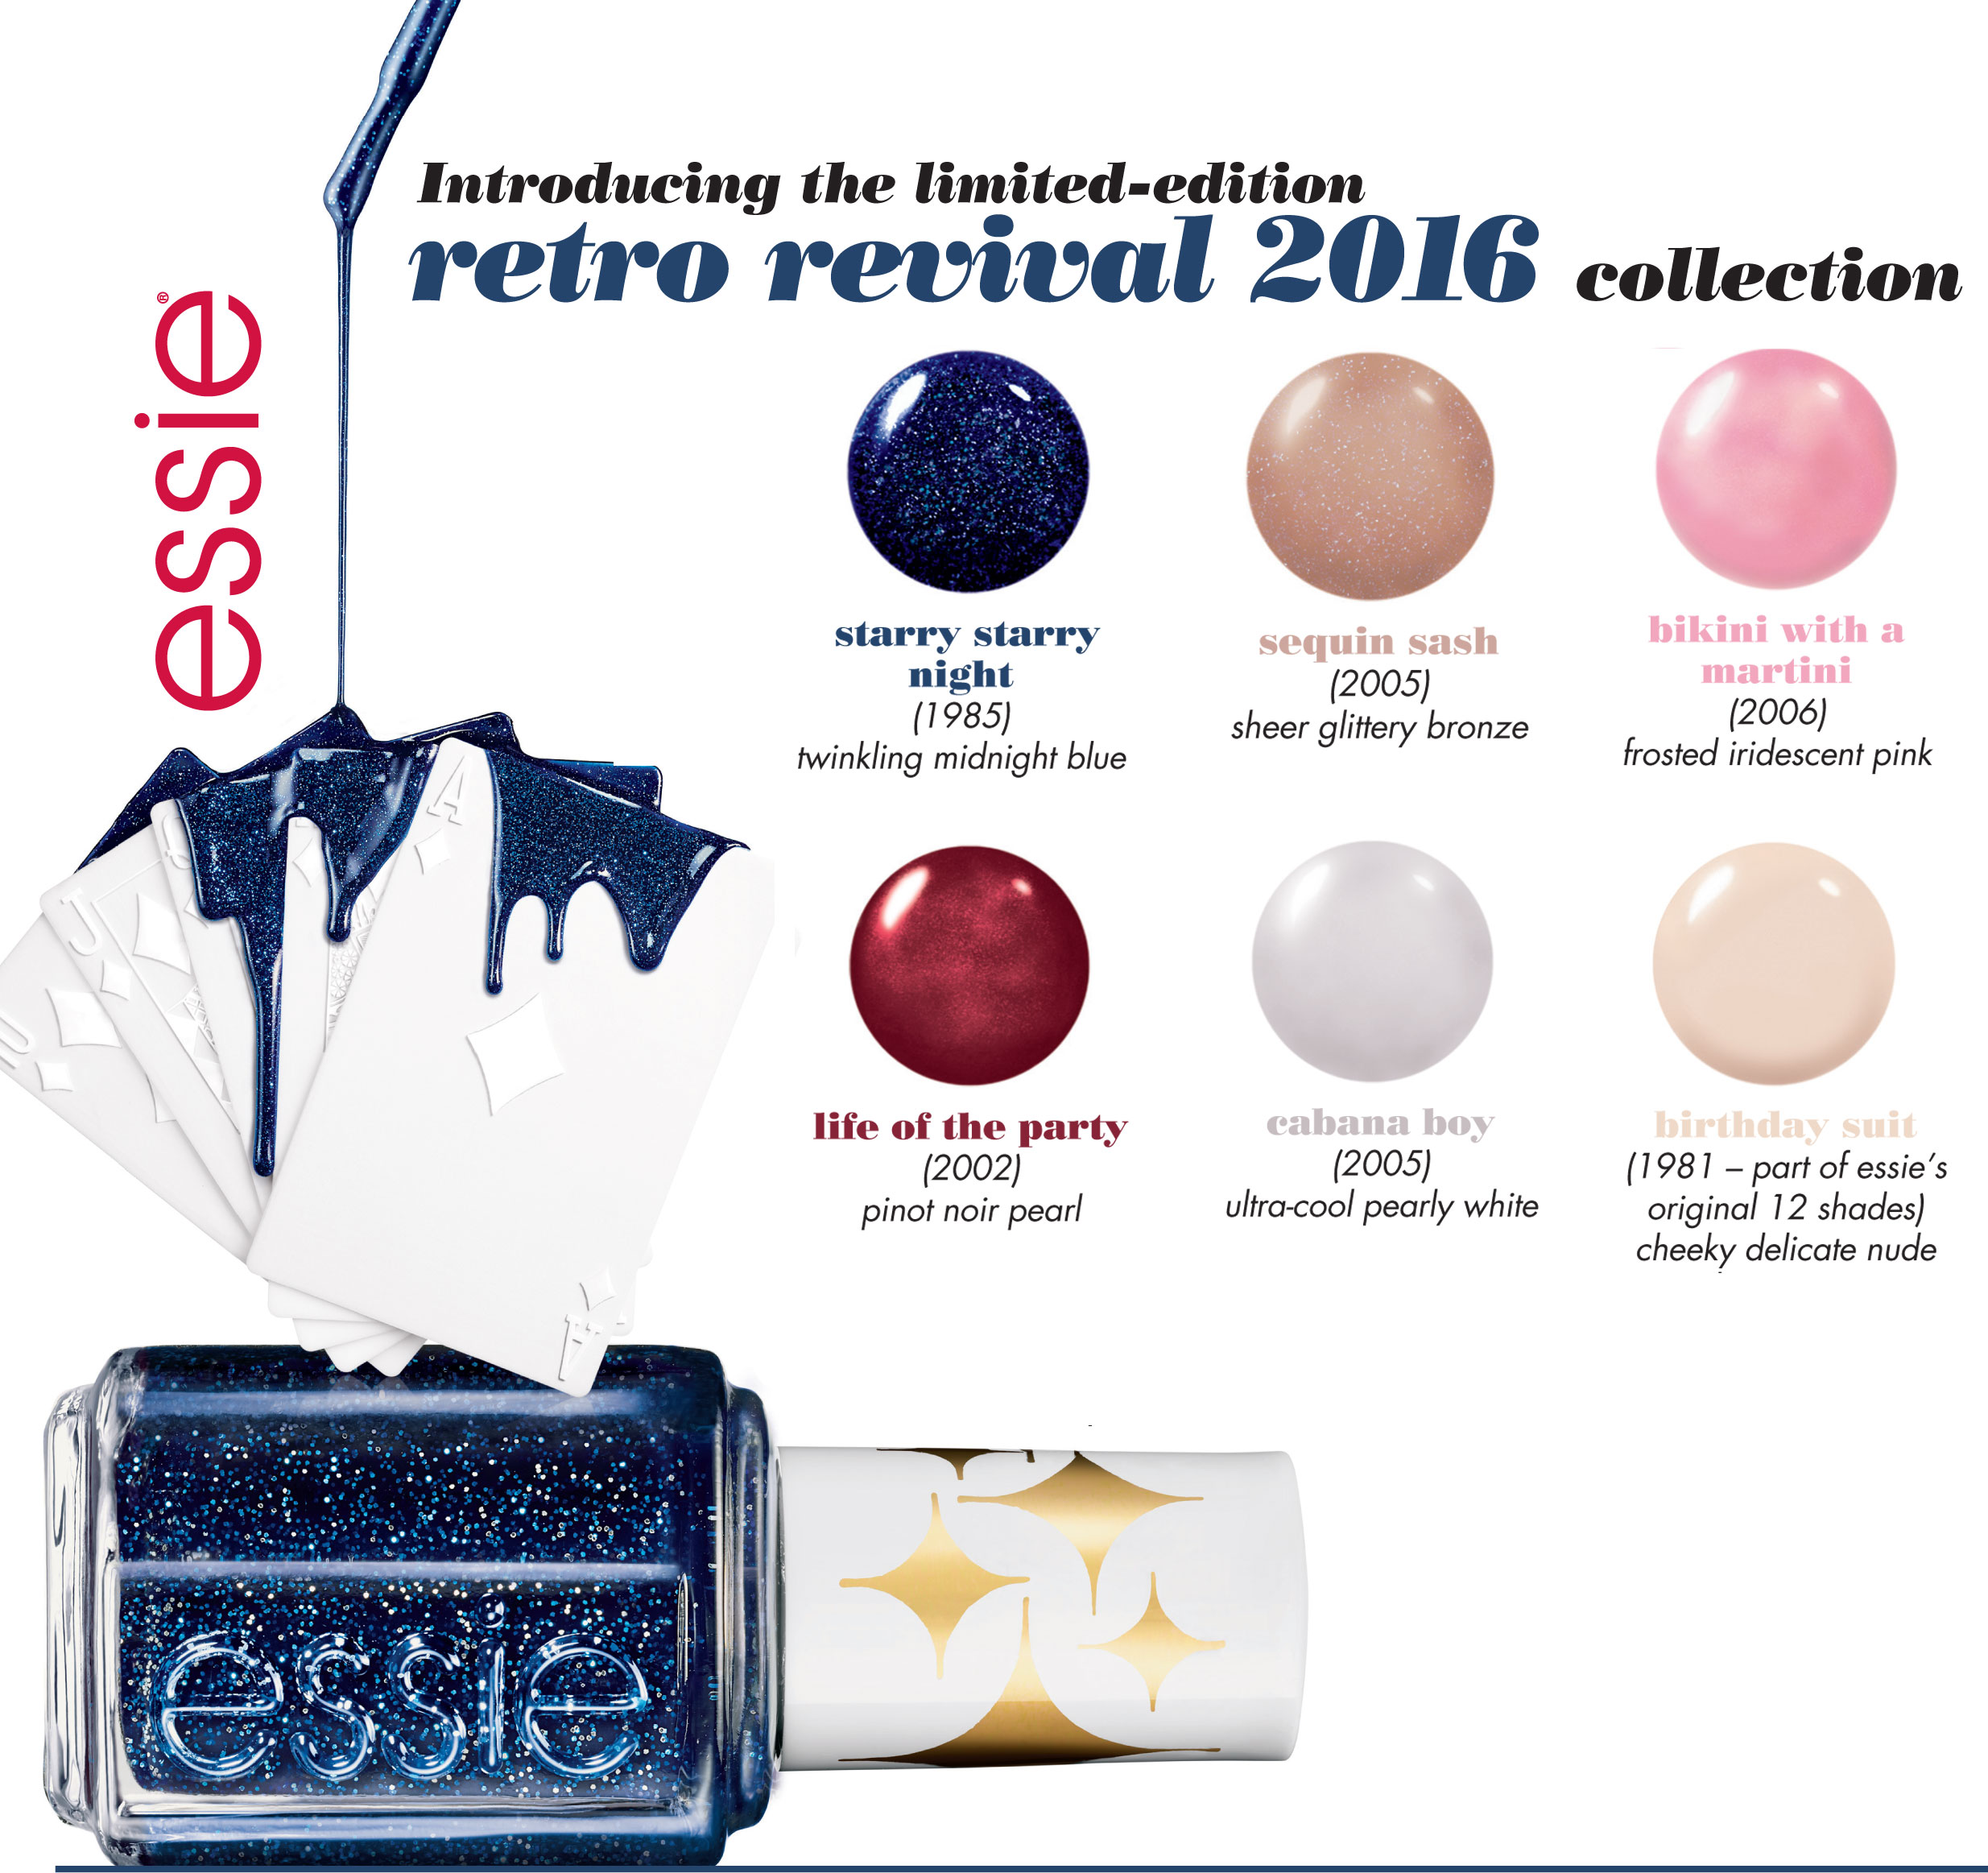 Nail News: Essie Retro Revival 2016 Collection - The Trendy Nail